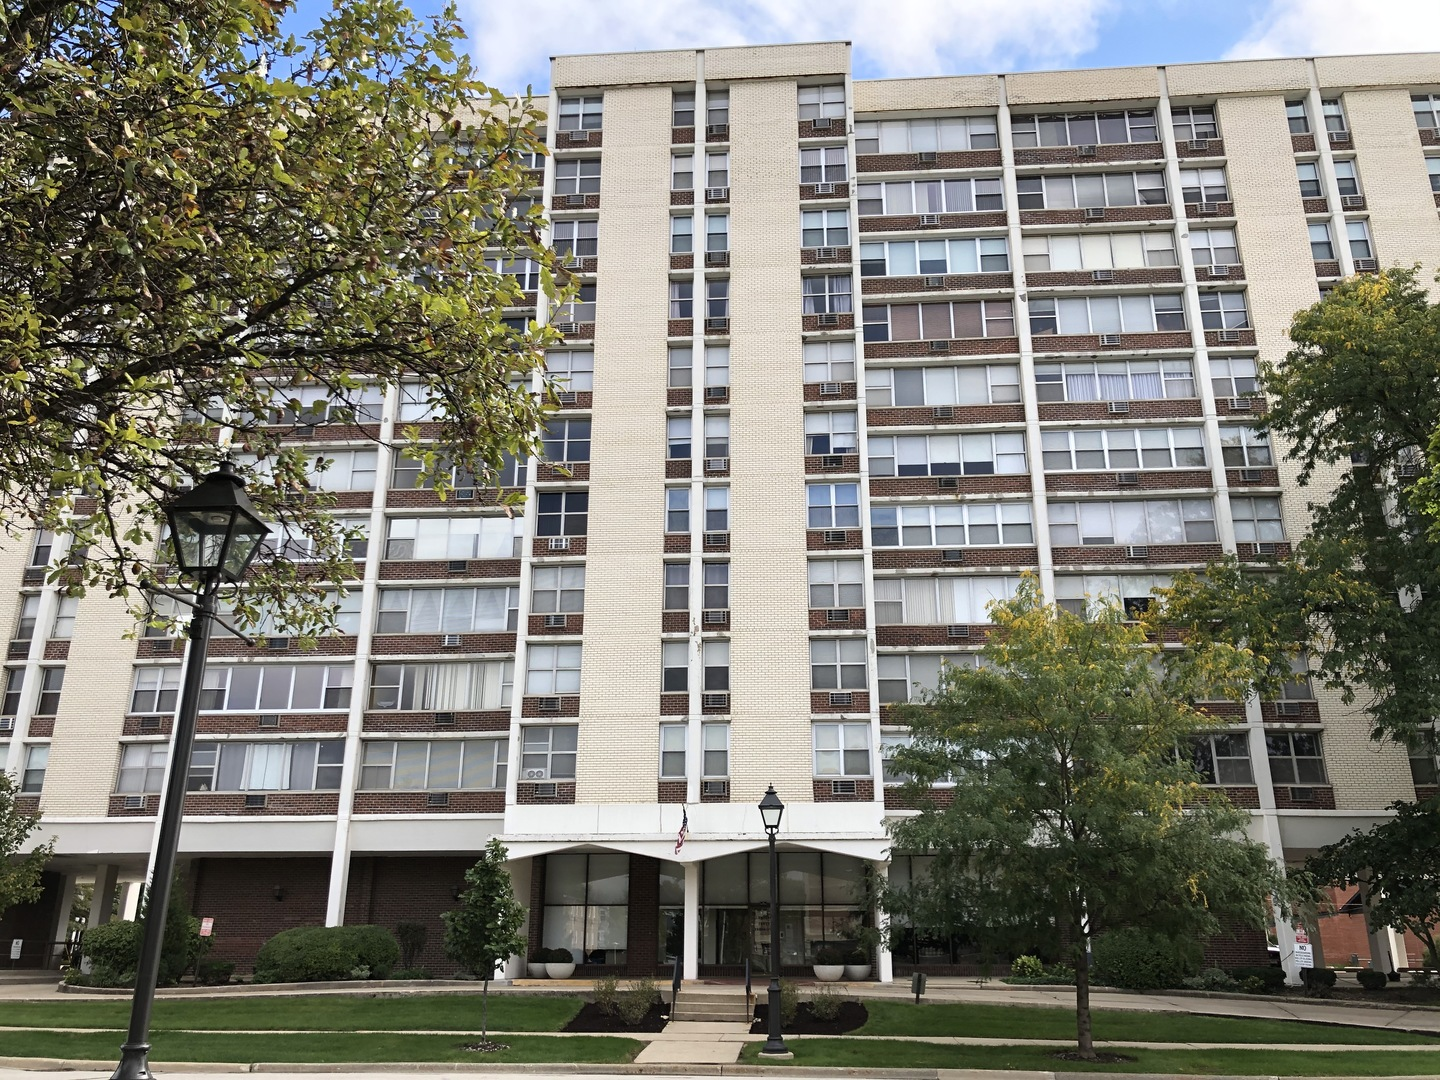 This gorgeous condo needs is waiting for you! Sharp decor and flooring throughout, large windows to let the sun shine in, and so much closet space! Remodeled kitchen features newer appliances, white cabinets, new counters, and opens to a large dining area with custom lighting. Fabulous location just one block from Metra, restaurants, and all that downtown Lombard has to offer. This is the one you've been waiting for!